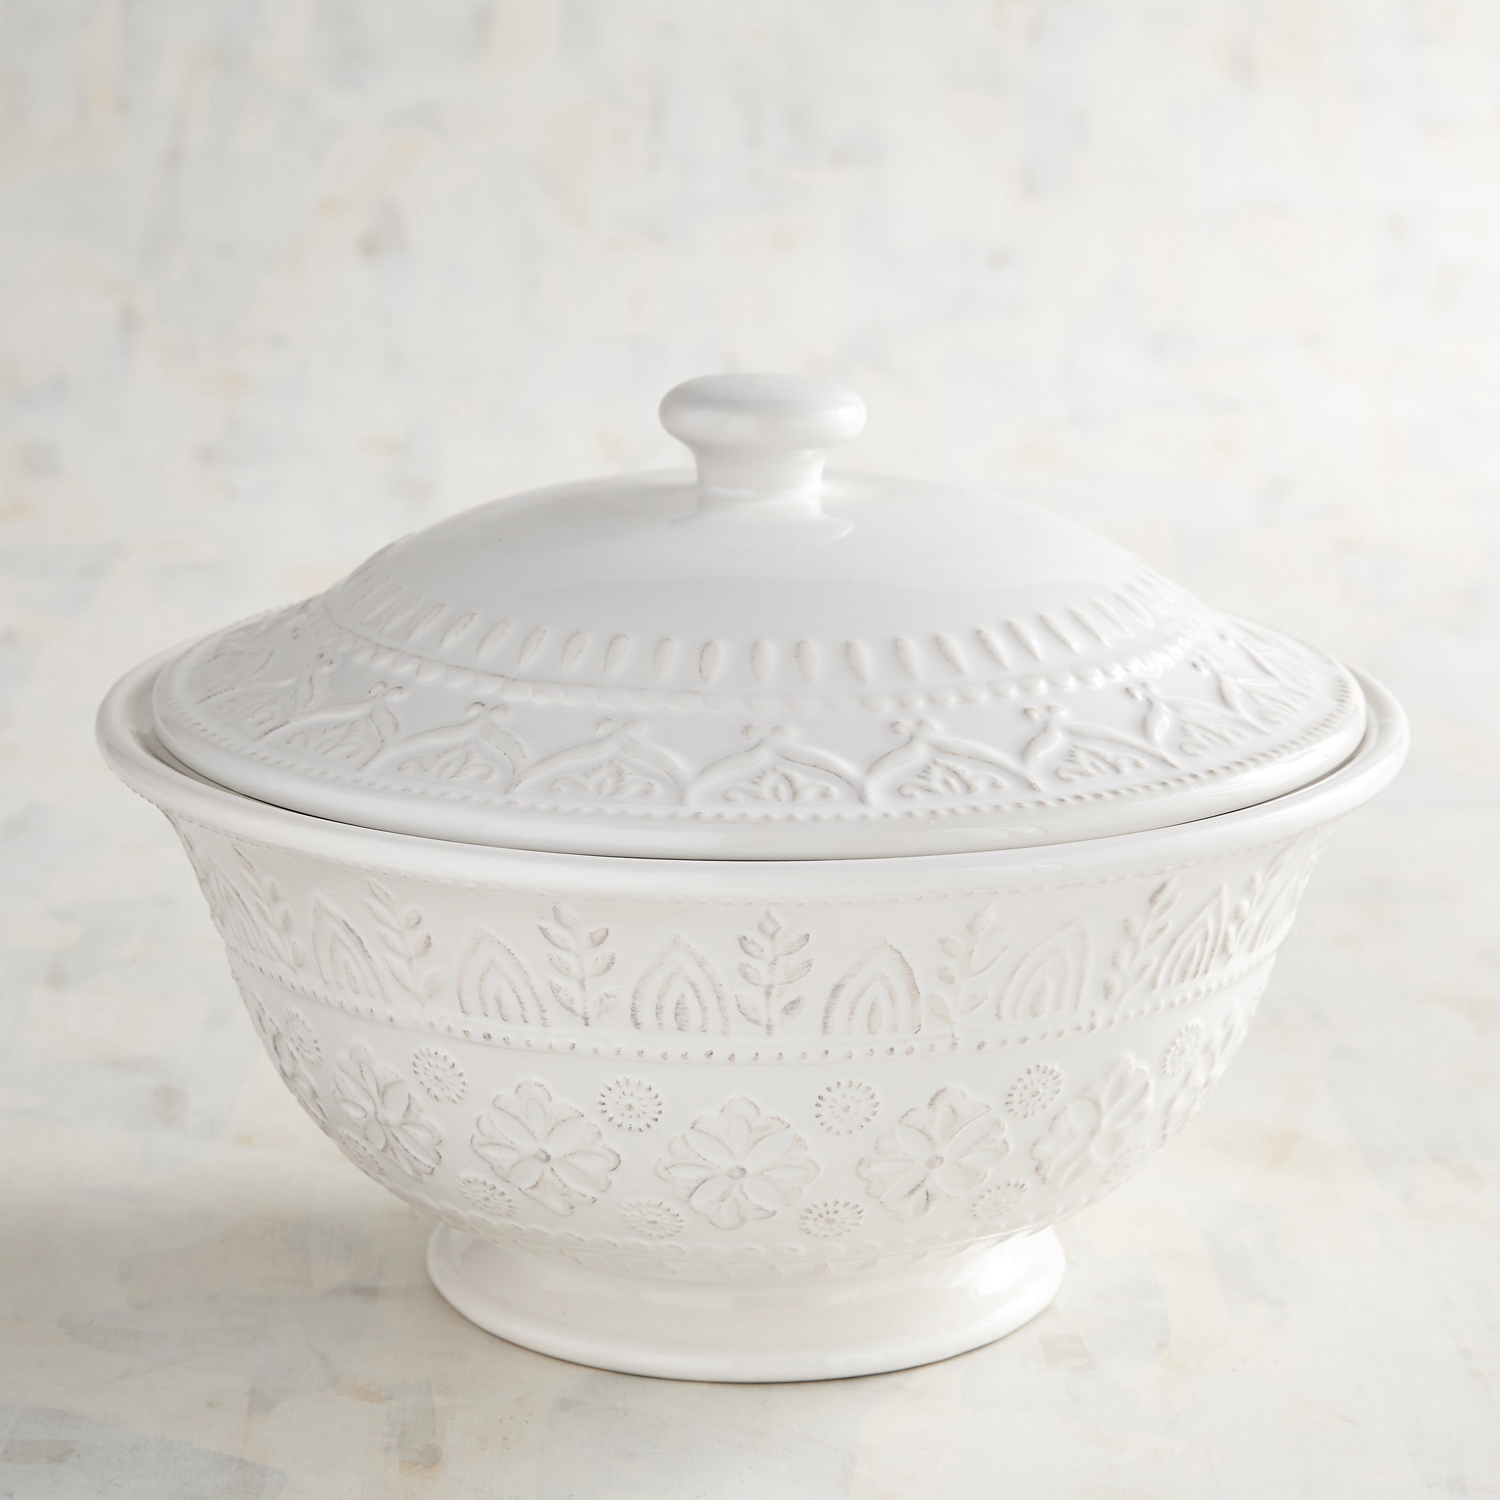 Chateau Claire White Soup Tureen